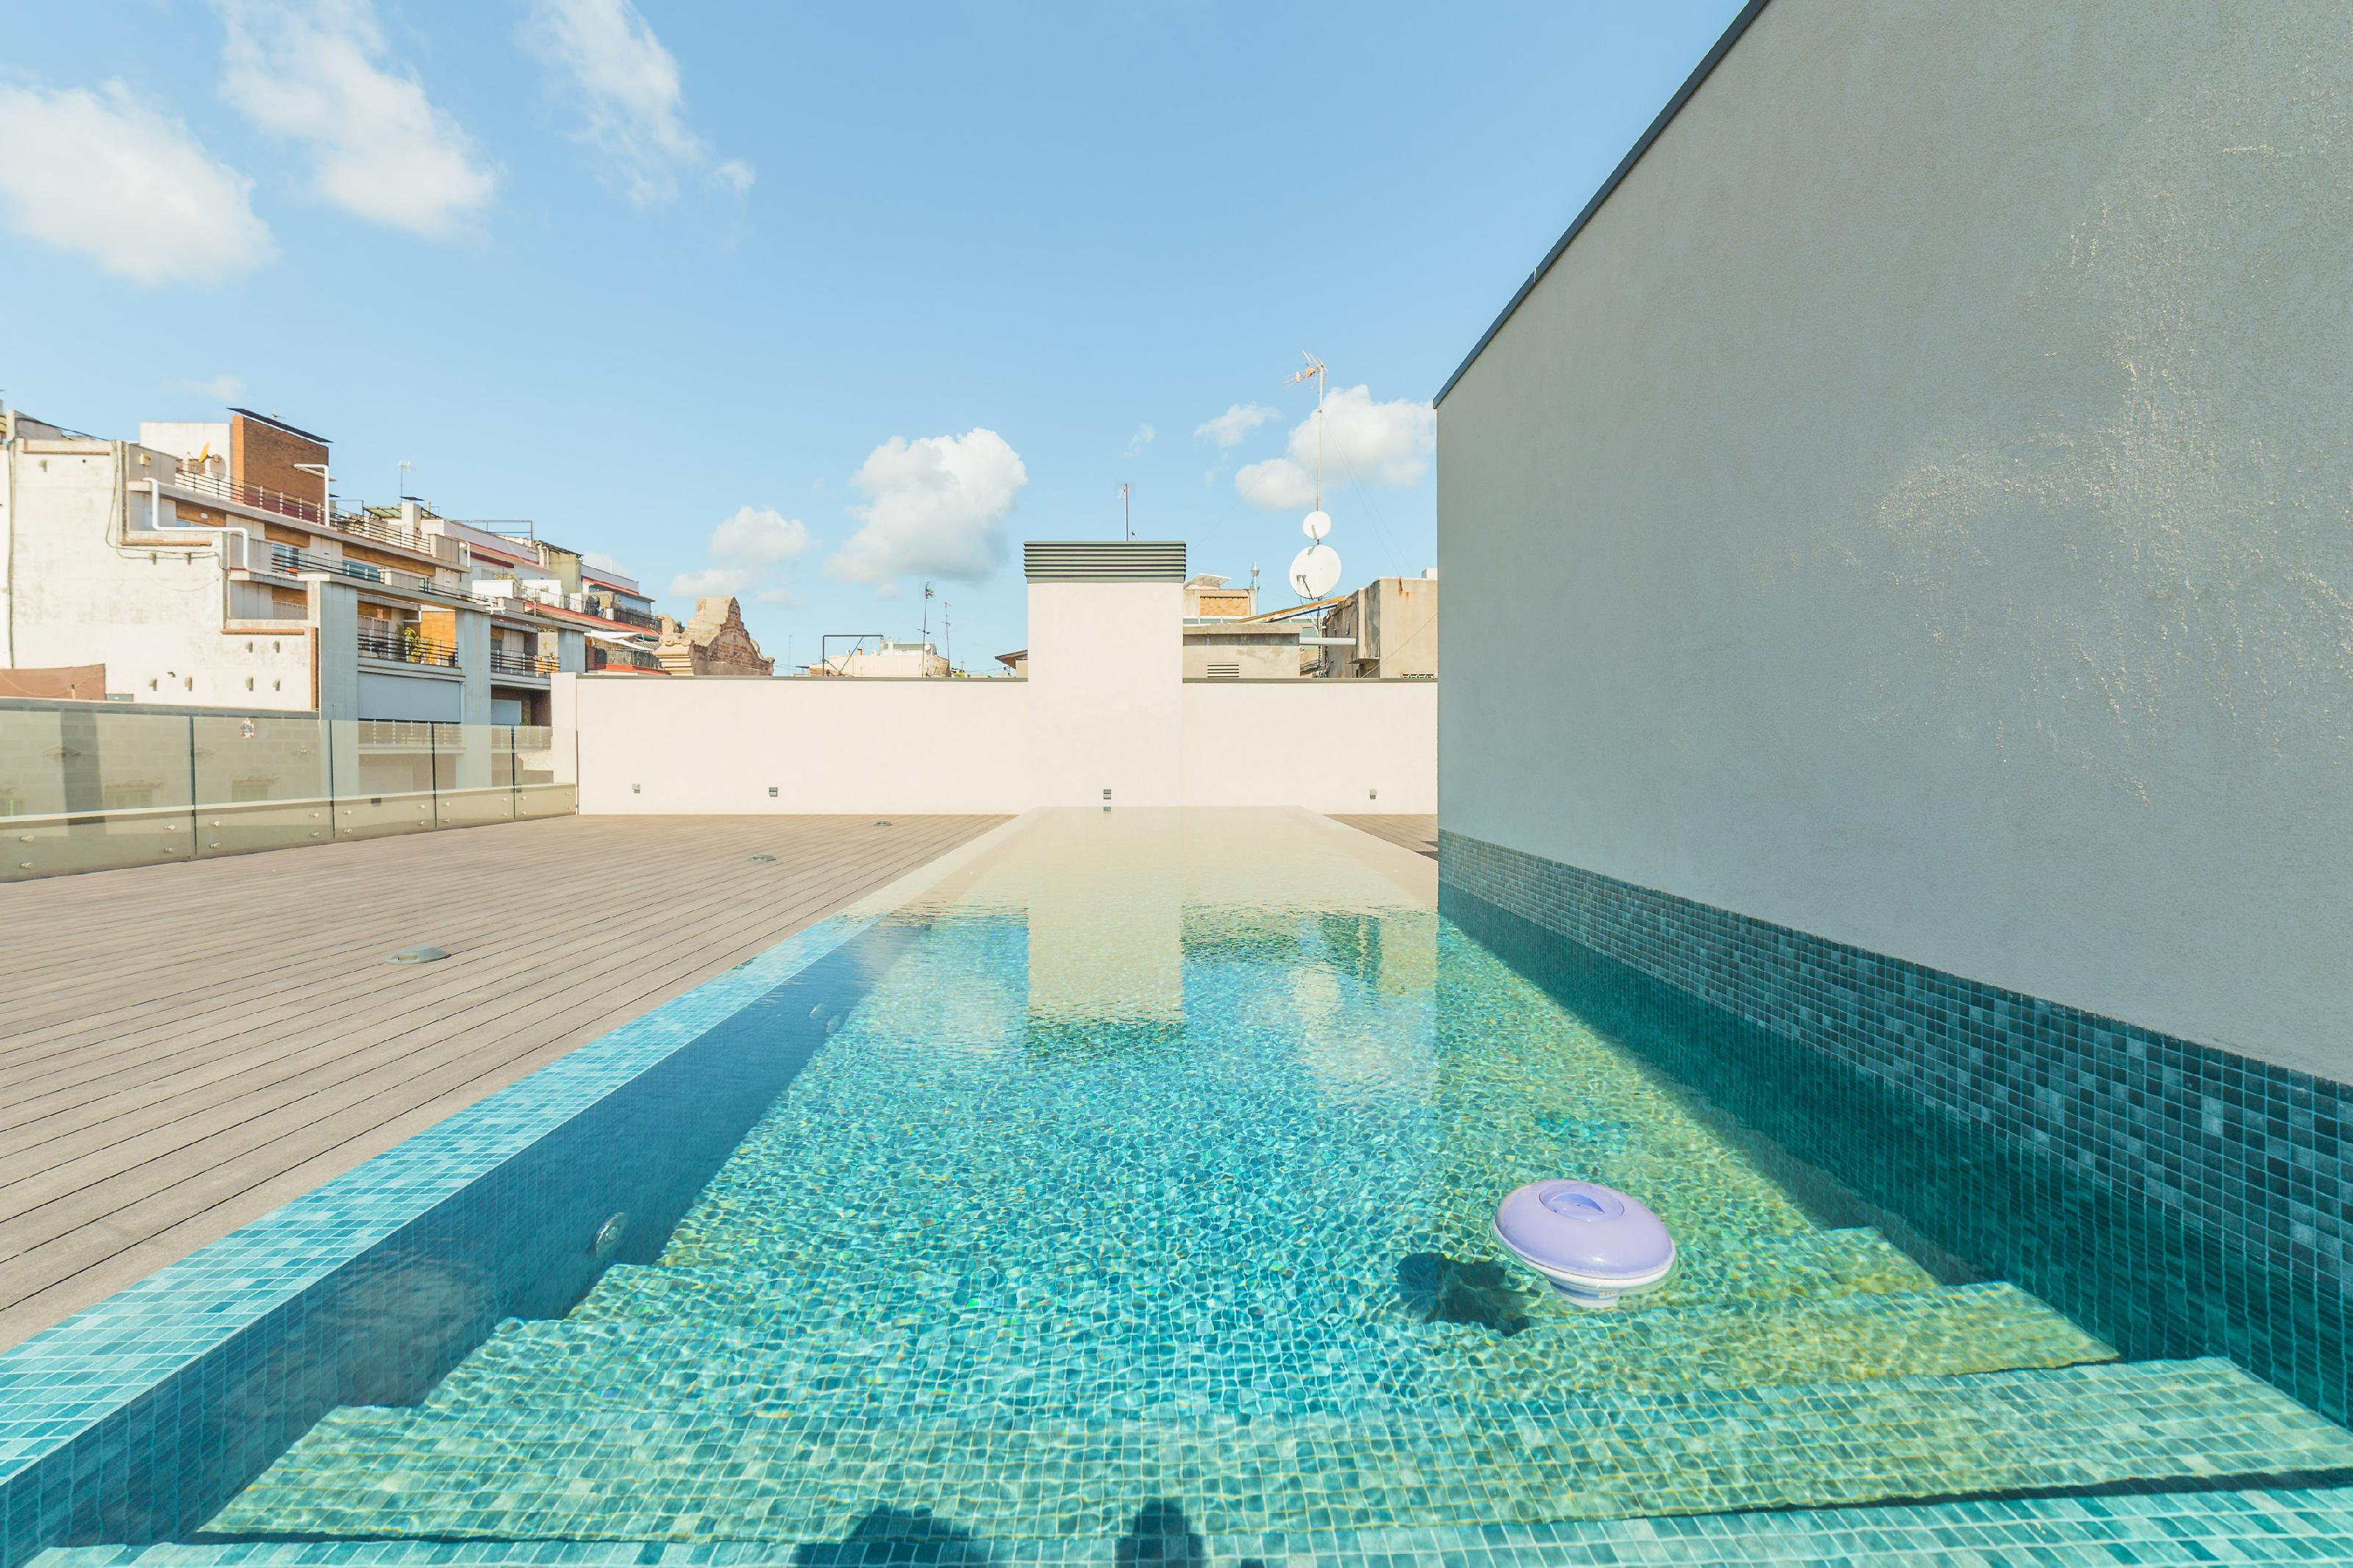 182474 Apartment for sale in Eixample, Old Left Eixample 4